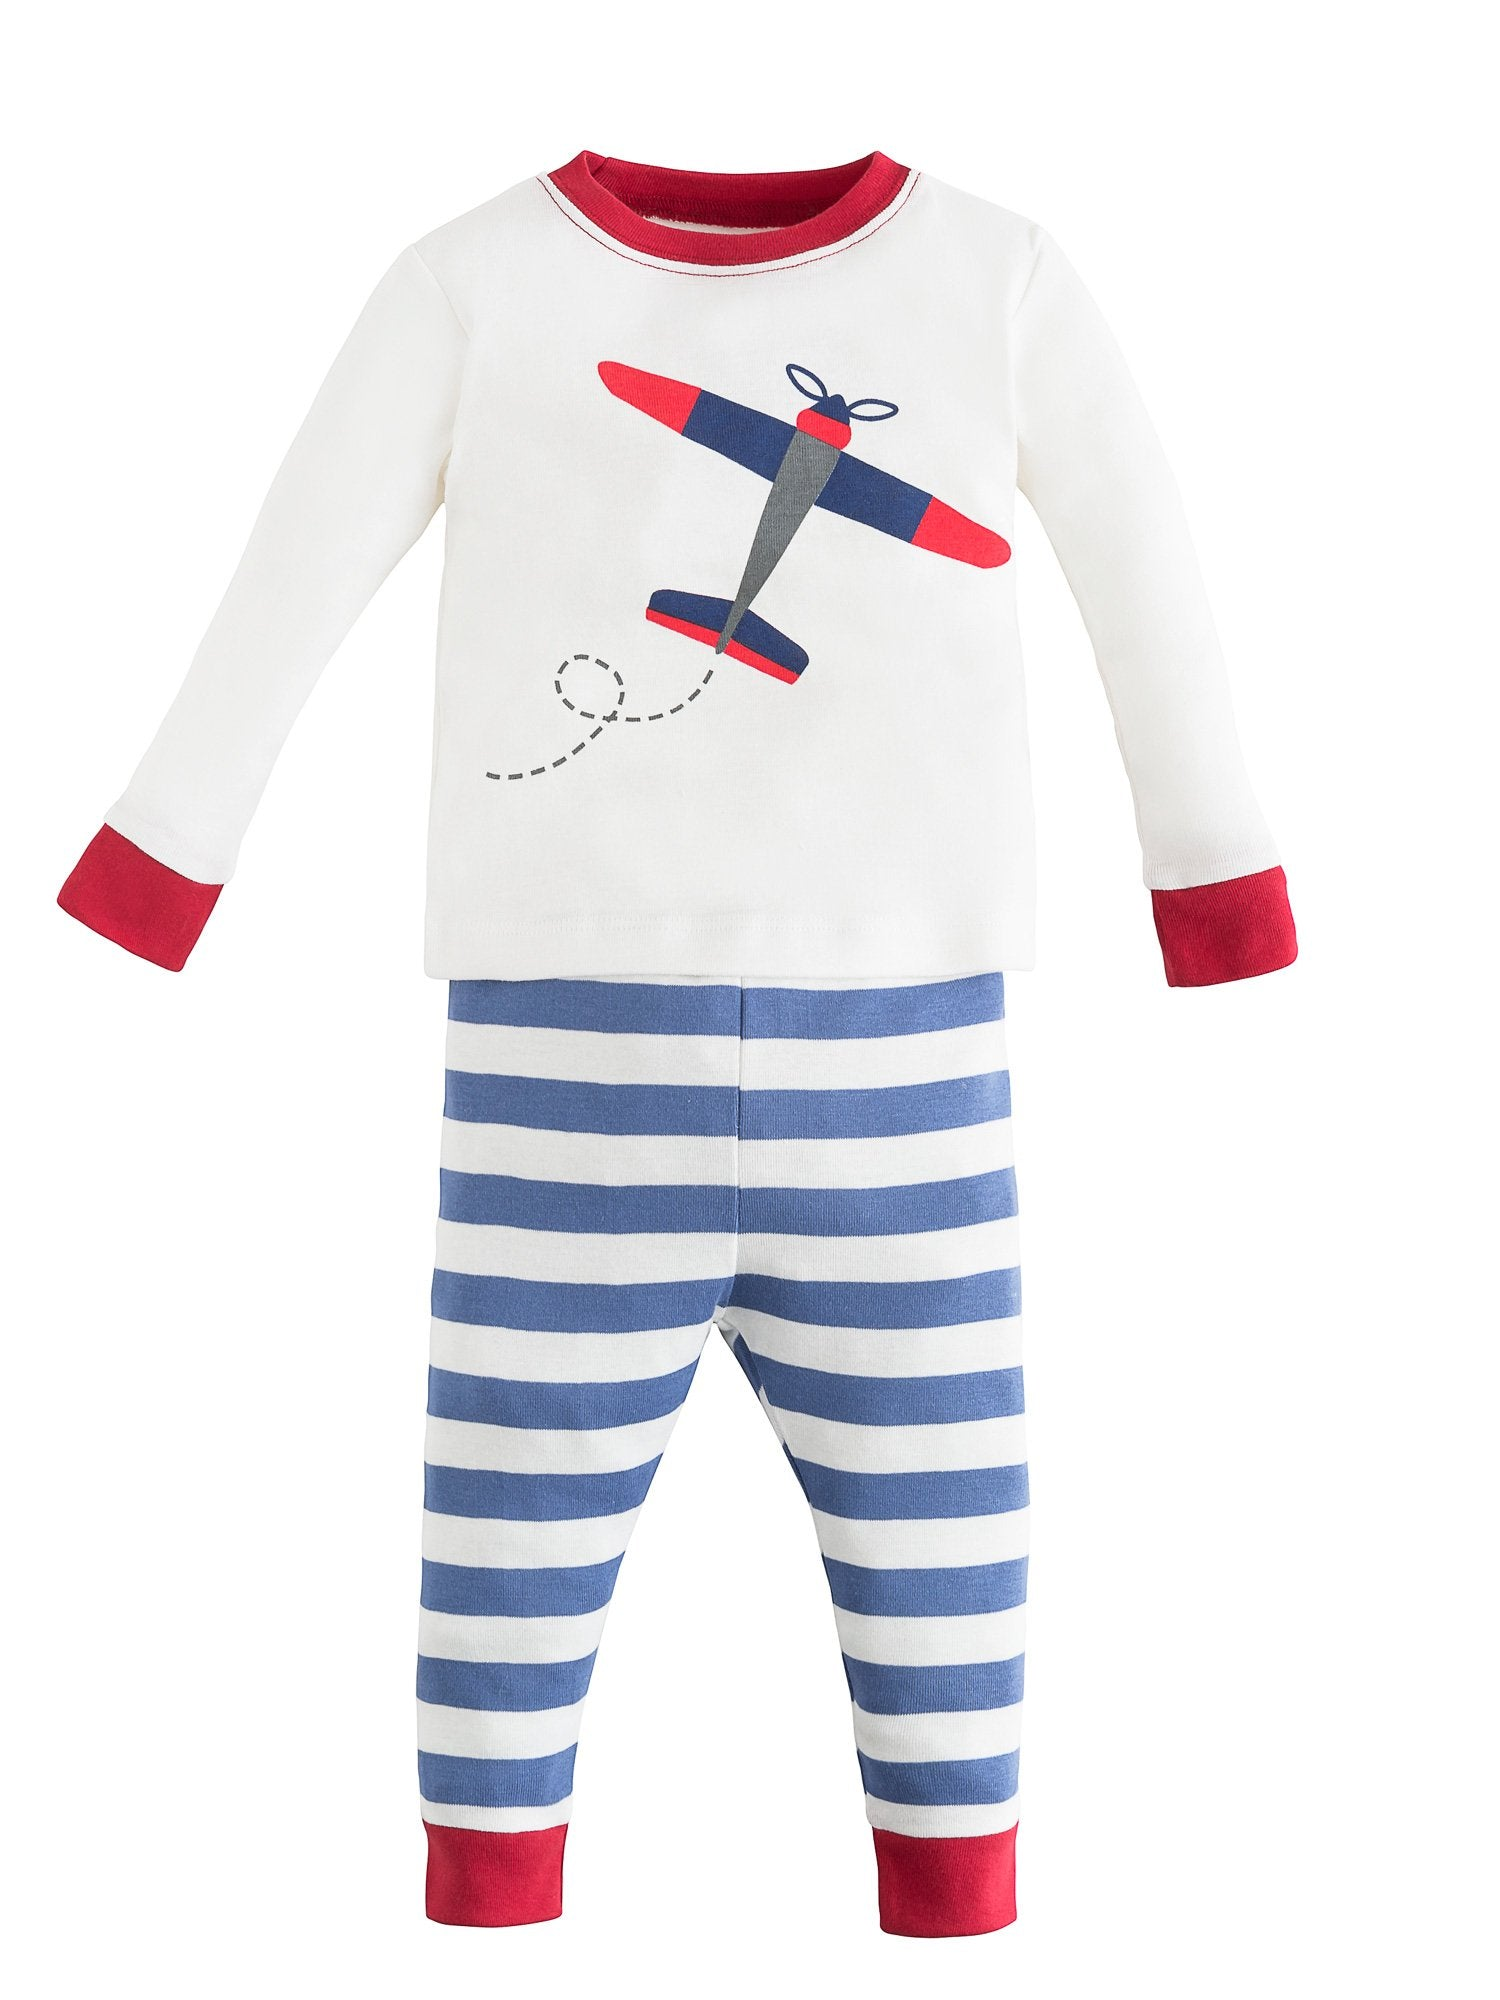 organic-cotton-baby-toddler-long-johns-pajamas-airplane-print